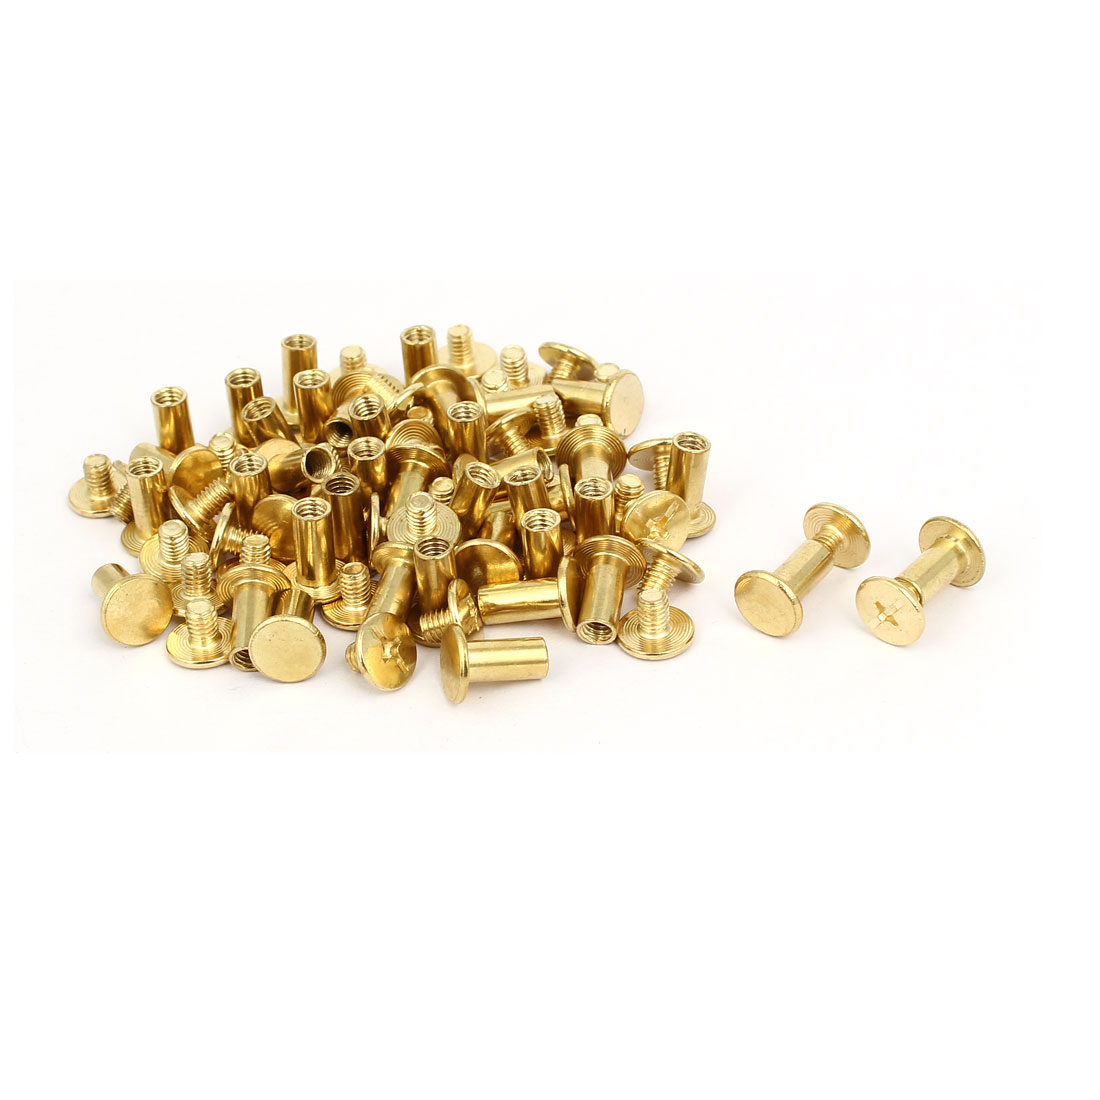 M5x10mm Binding Chicago Screw Post Gold Tone 40pcs for Photo Albums Scrapbook